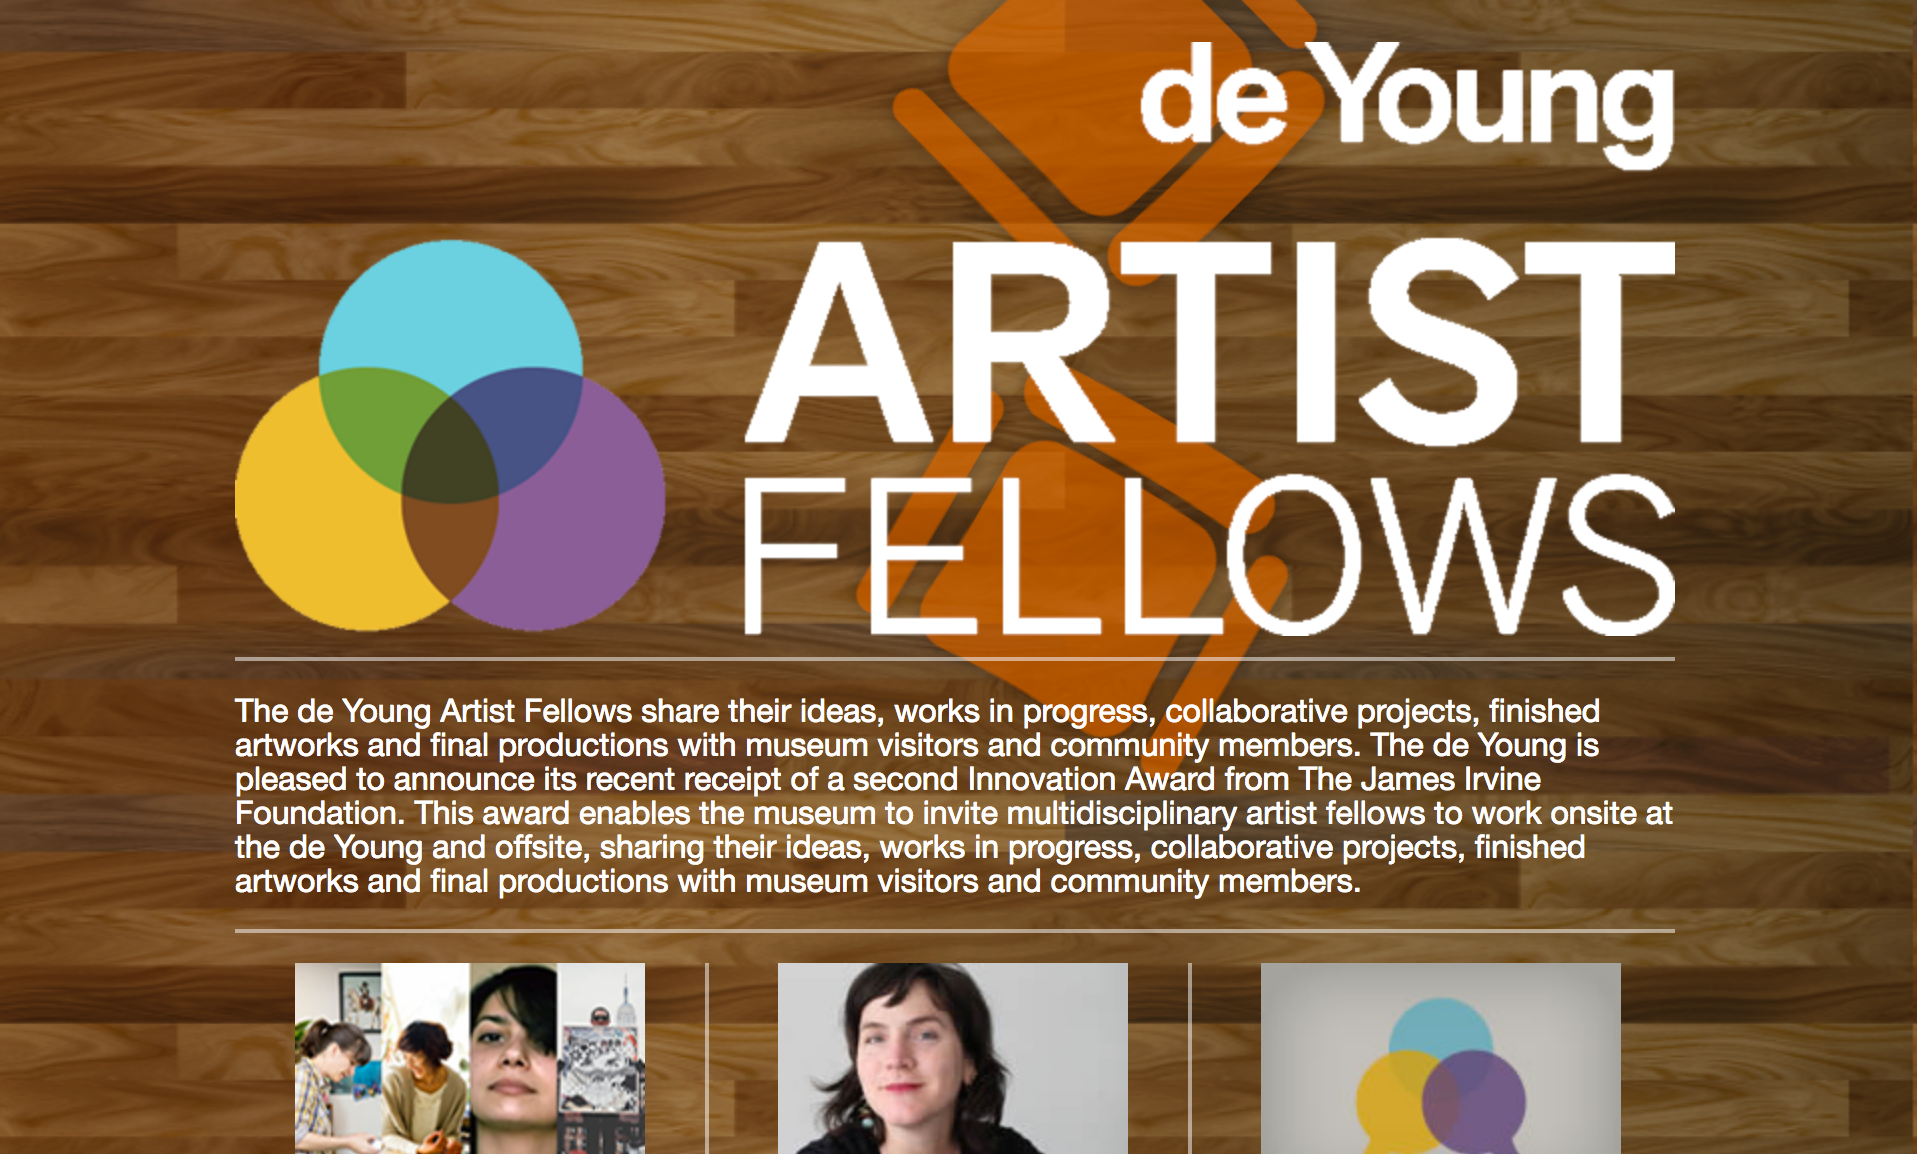 DeYoung Artist Fellows Project, Fine Arts Museums SF  ArtWorkSpace Concept Webapp highlighting the ongoing work of 5 artists